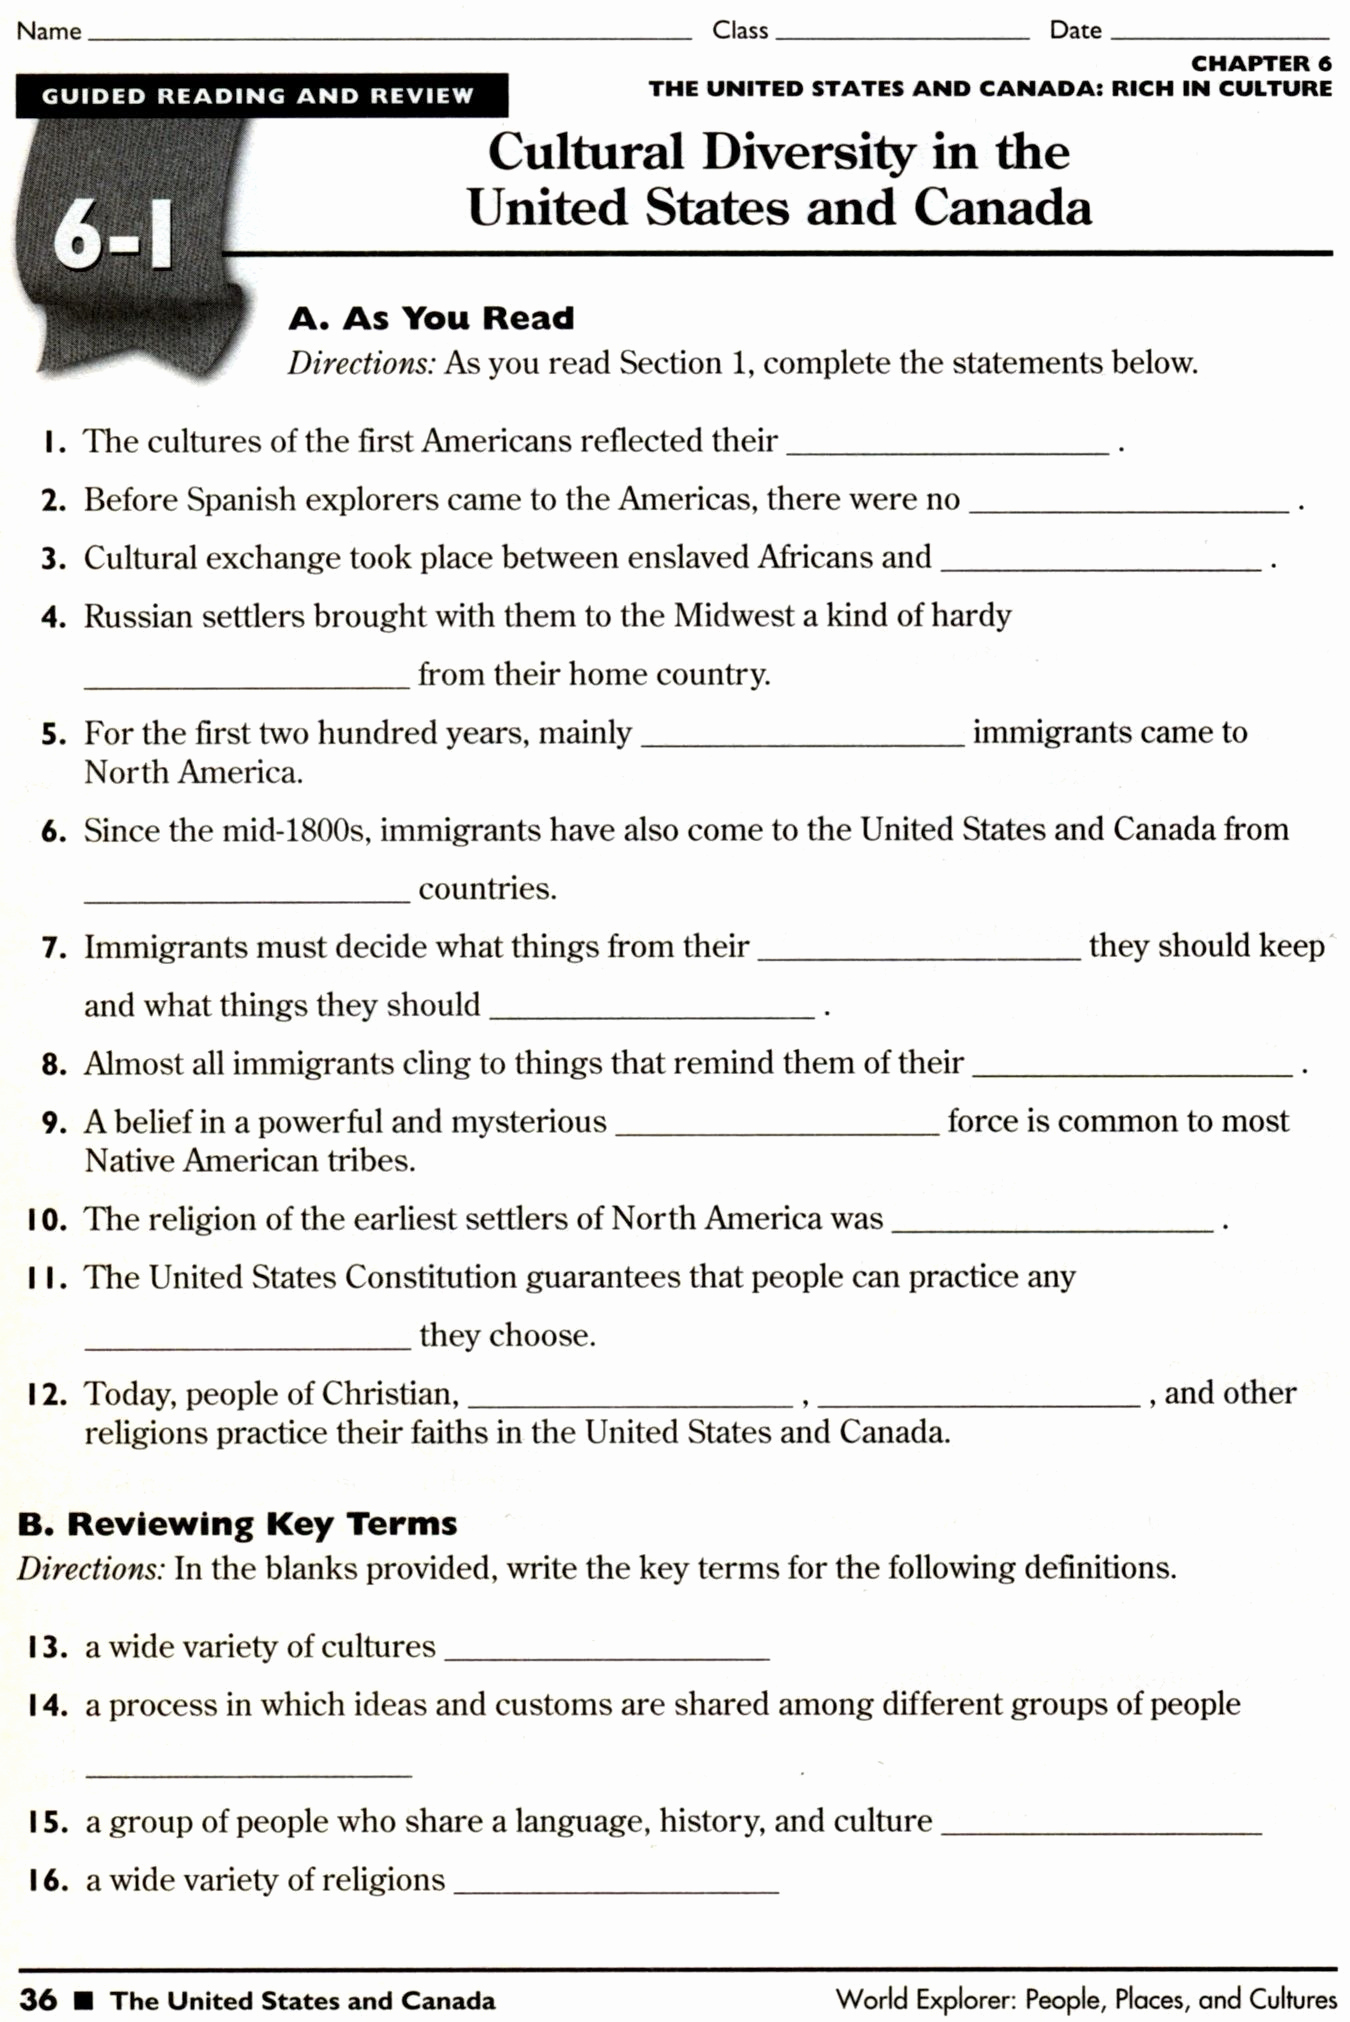 7th Grade History Worksheets Unique 7th Grade History Worksheets Grade 7 social Stu S